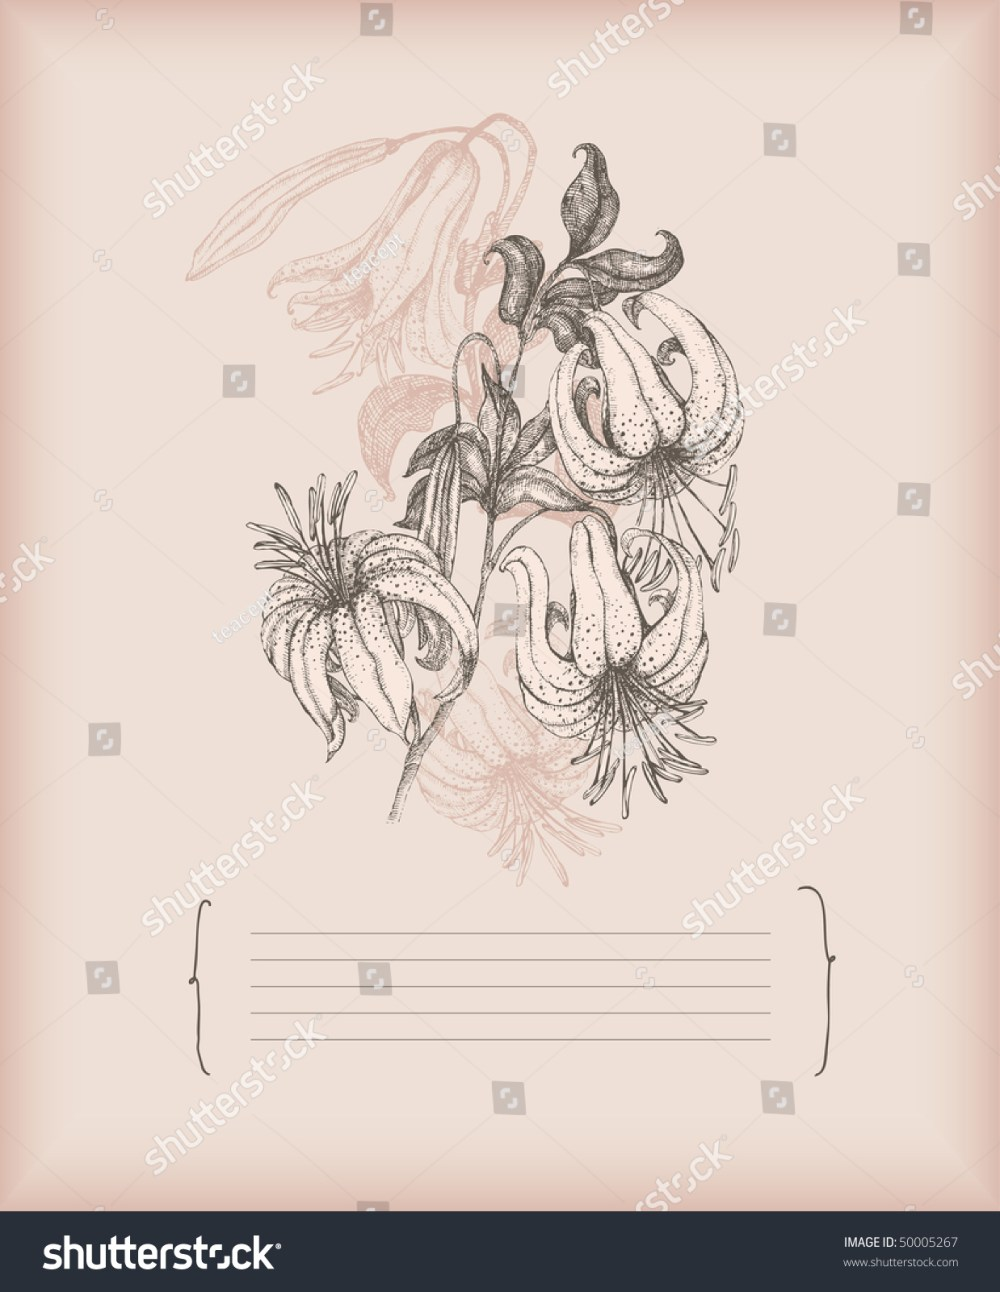 medium resolution of tiger lily drawing stock vector royalty free 50005267 shutterstock diagram of tiger lily